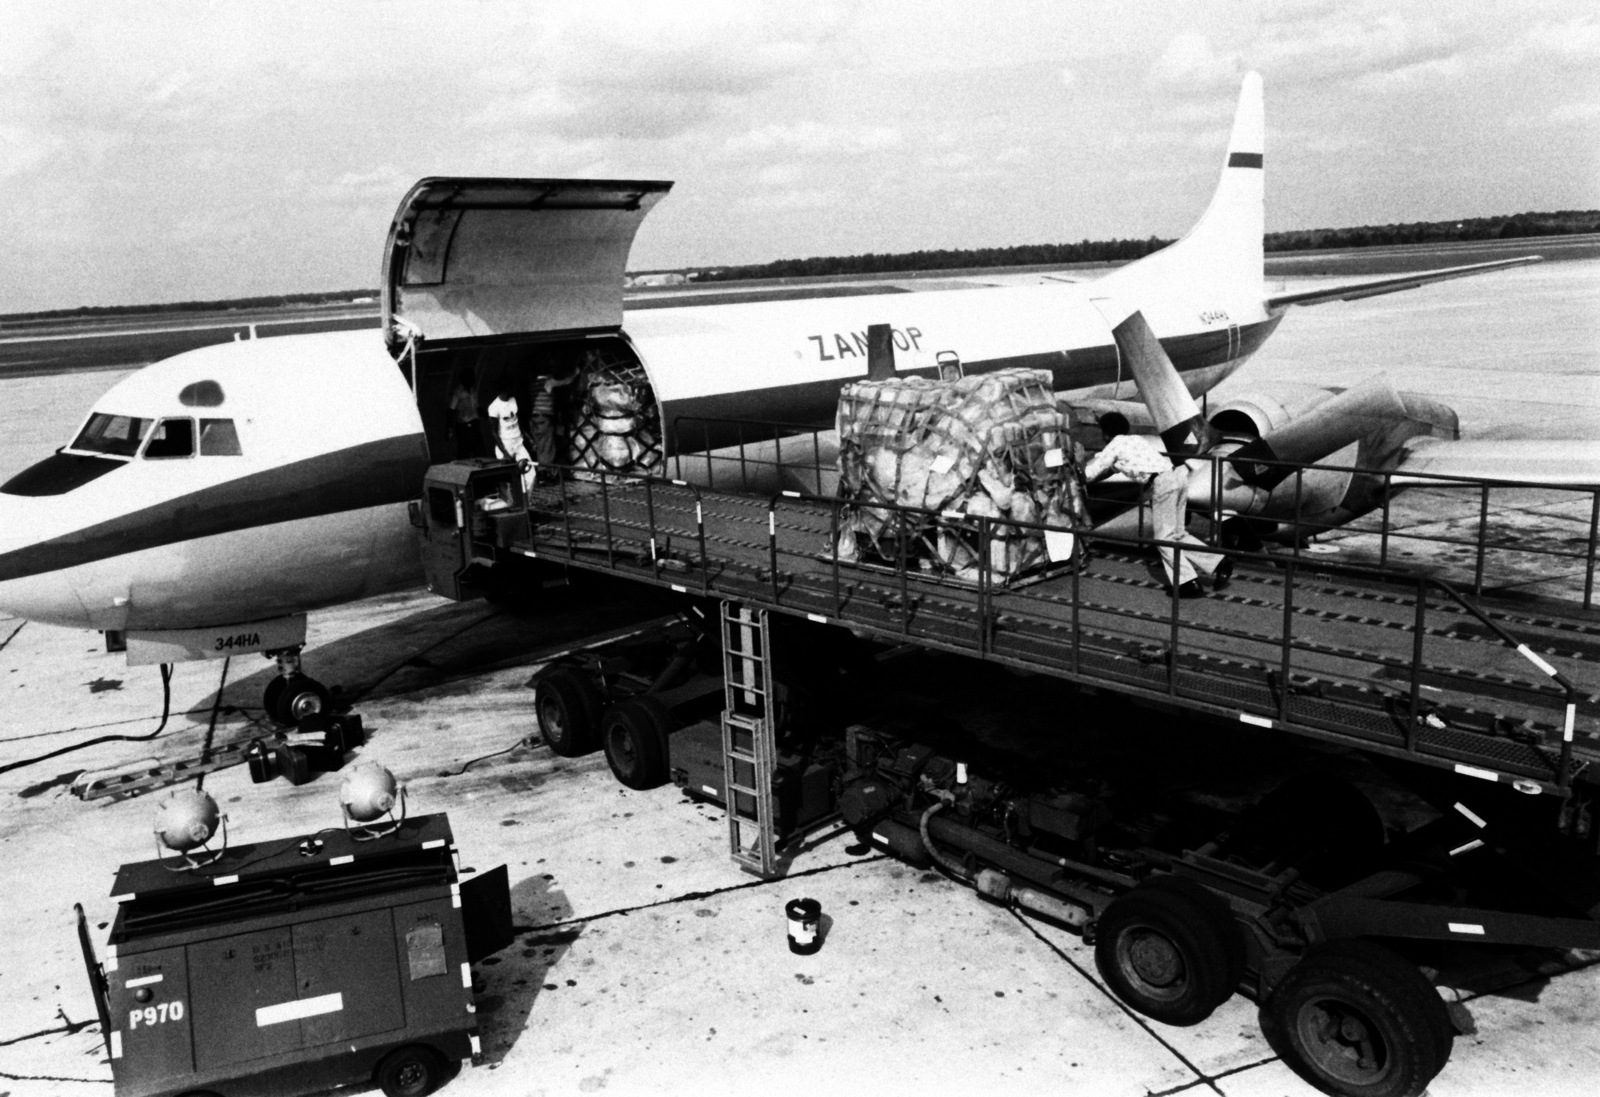 Priority cargo is loaded aboard an Electra aircraft from Zantop airlines, for delivery to a military installation. The aircraft is part of an air-cargo system called Log Air, operated by private airlines under contract to the Air Force